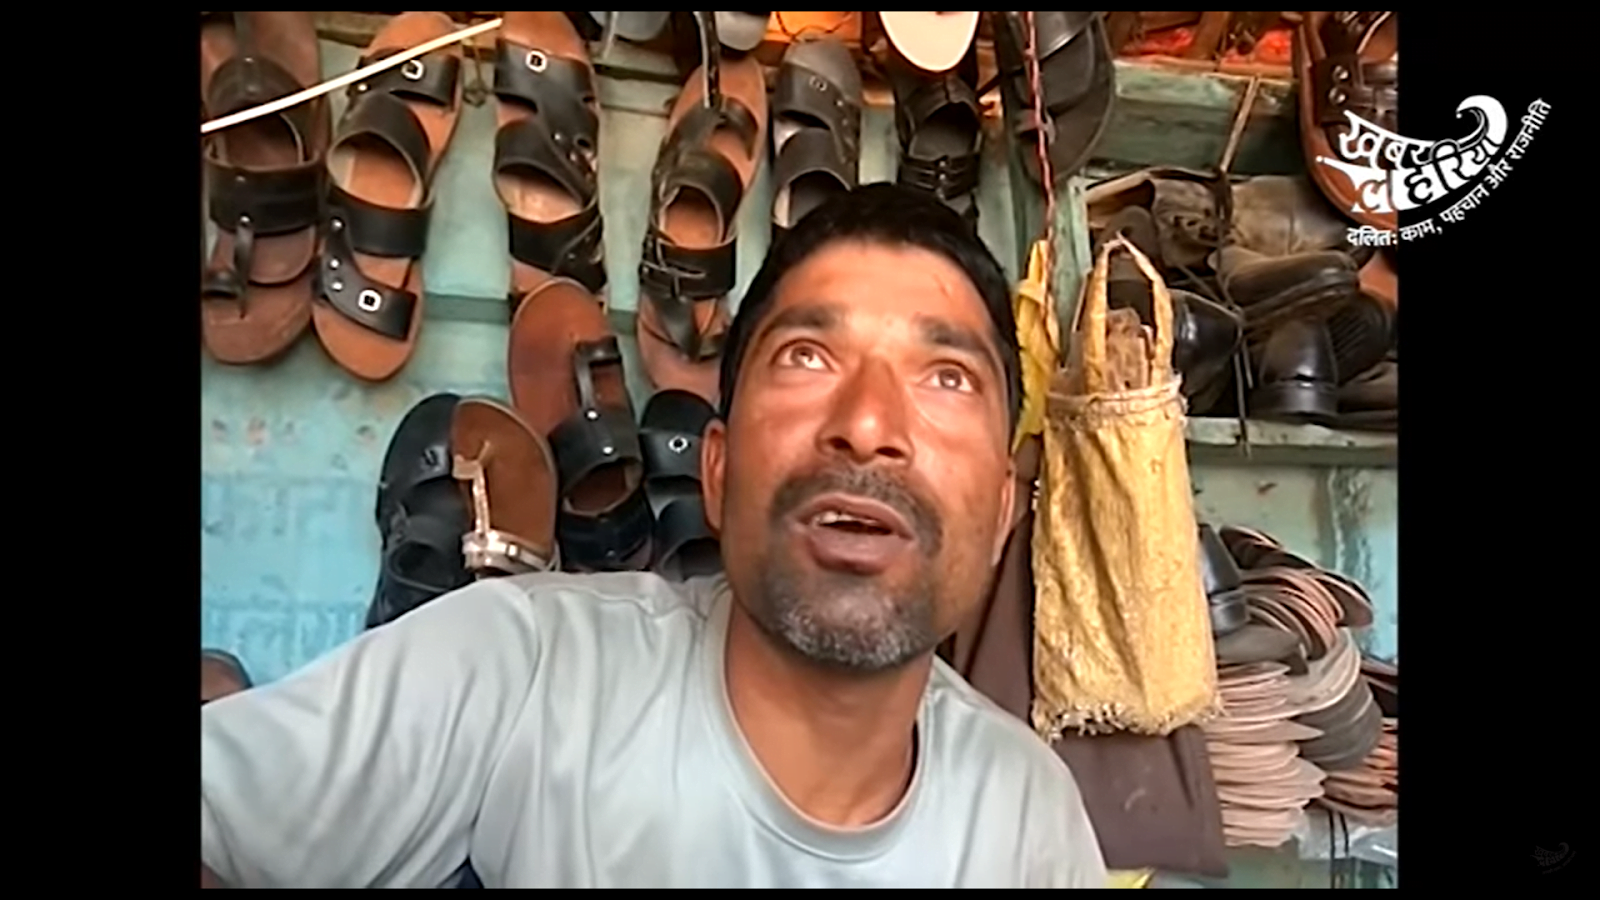 Rakesh, a Dalit cobbler in Mau, Chitrakoot in 2018. recalled how at one time the whole mohalla was involved in the trade of cattle-skinning and leather work but have left due to casteism and occupational stigma.